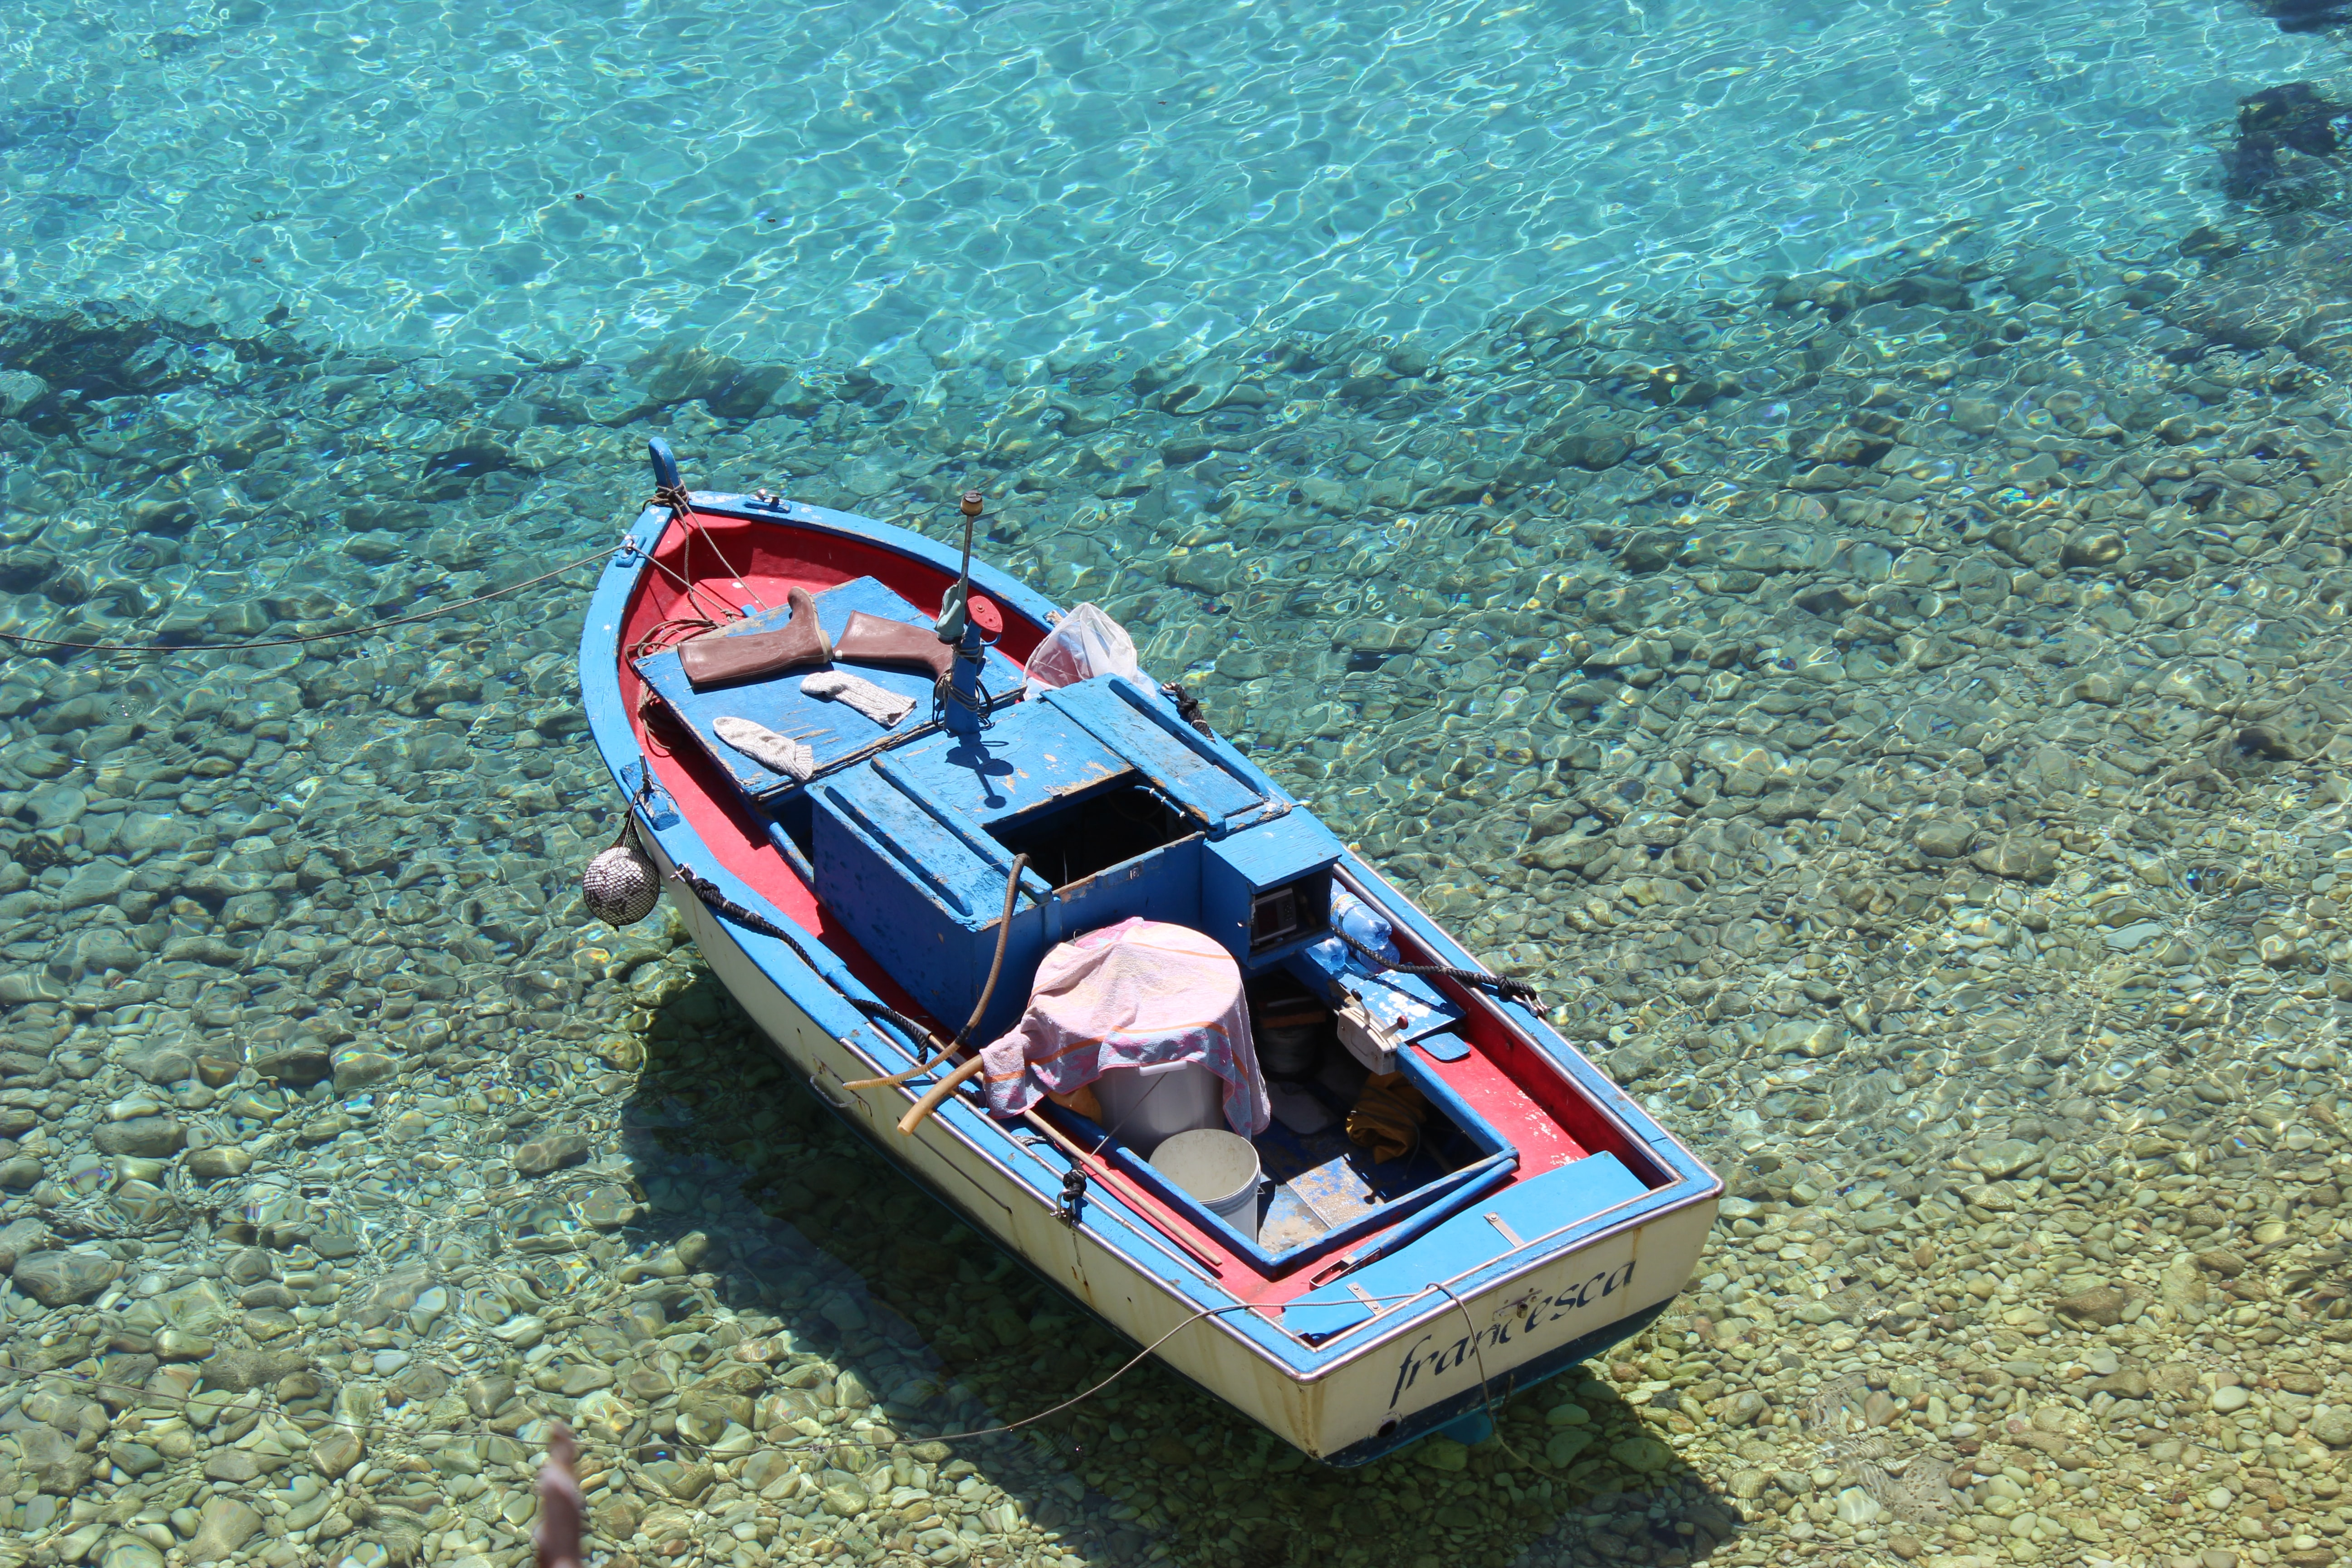 blue and red boat toy on body of water